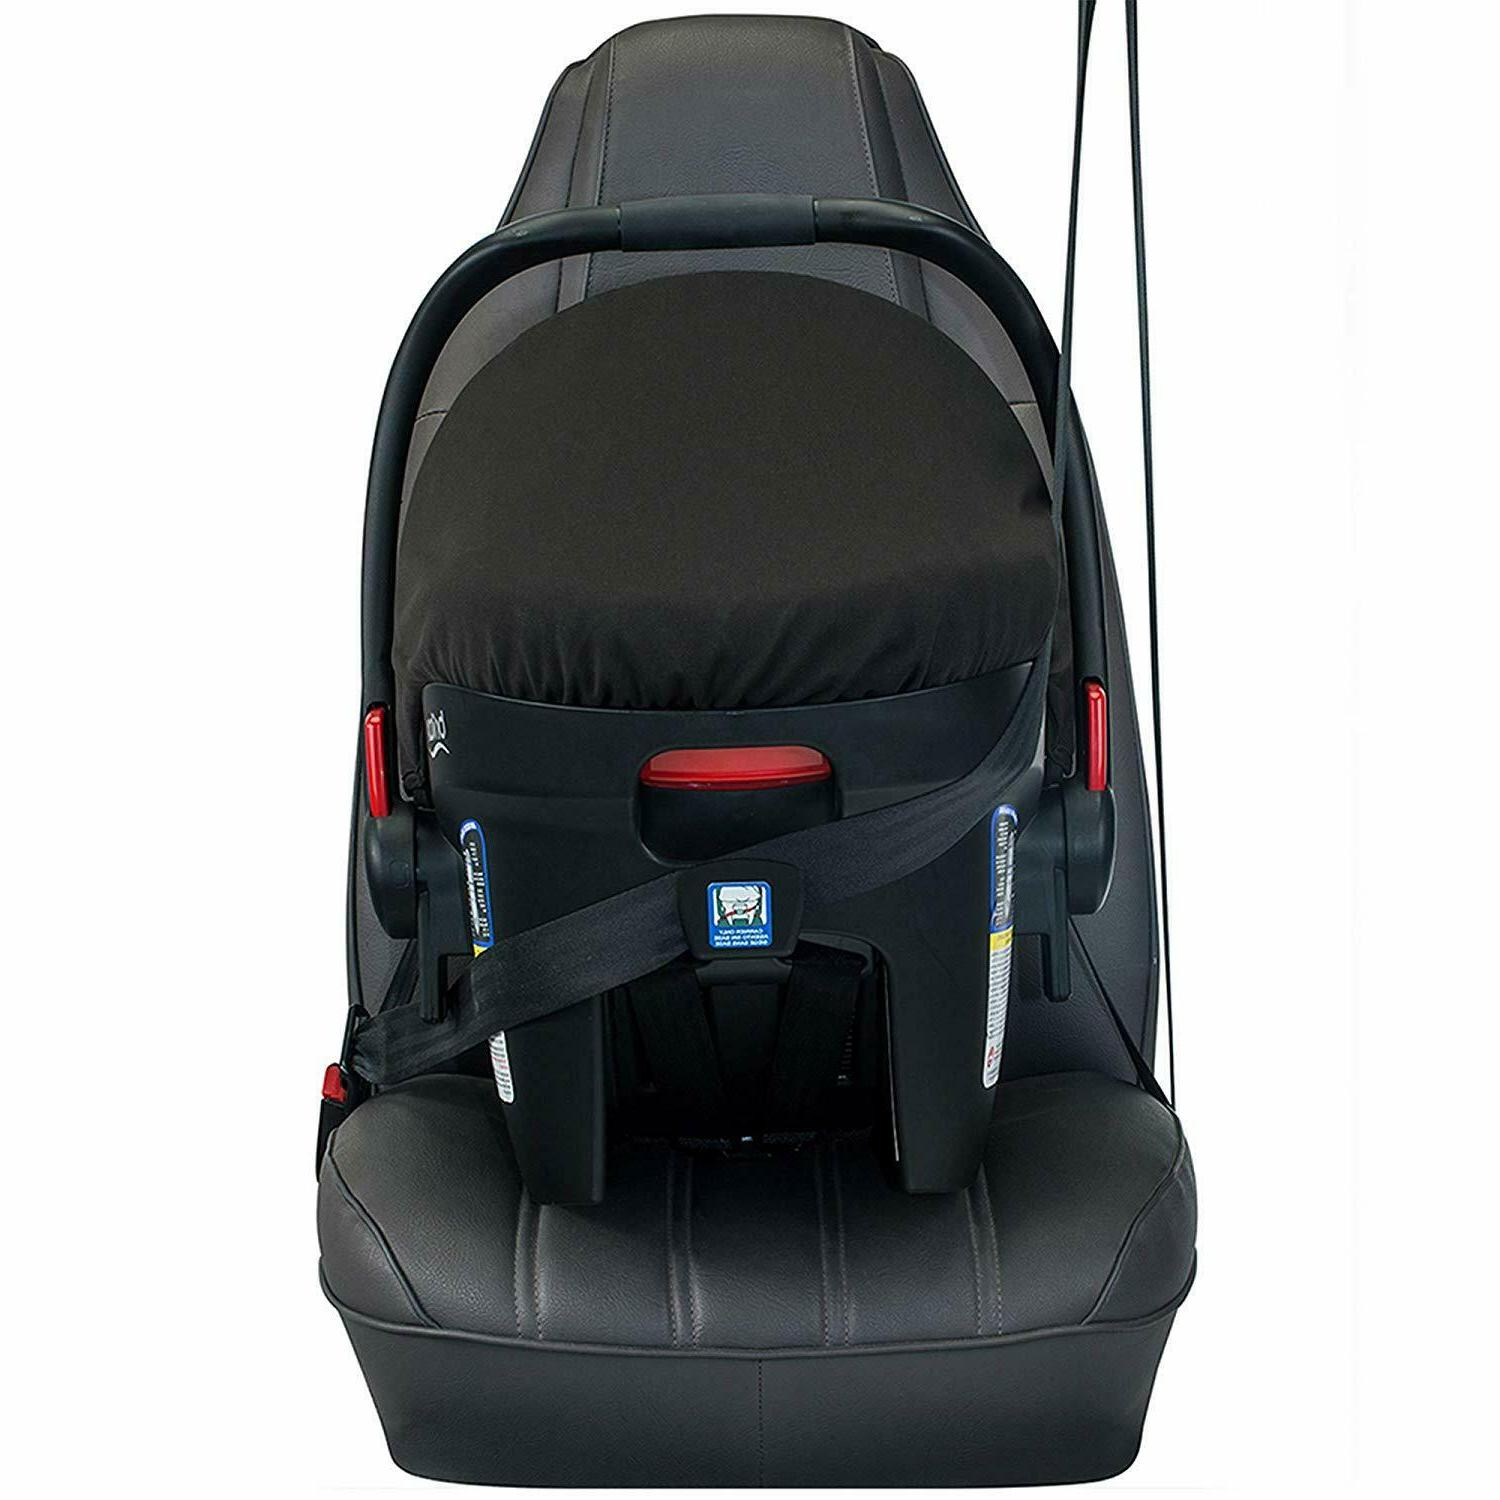 Britax Infant Seat in ARB